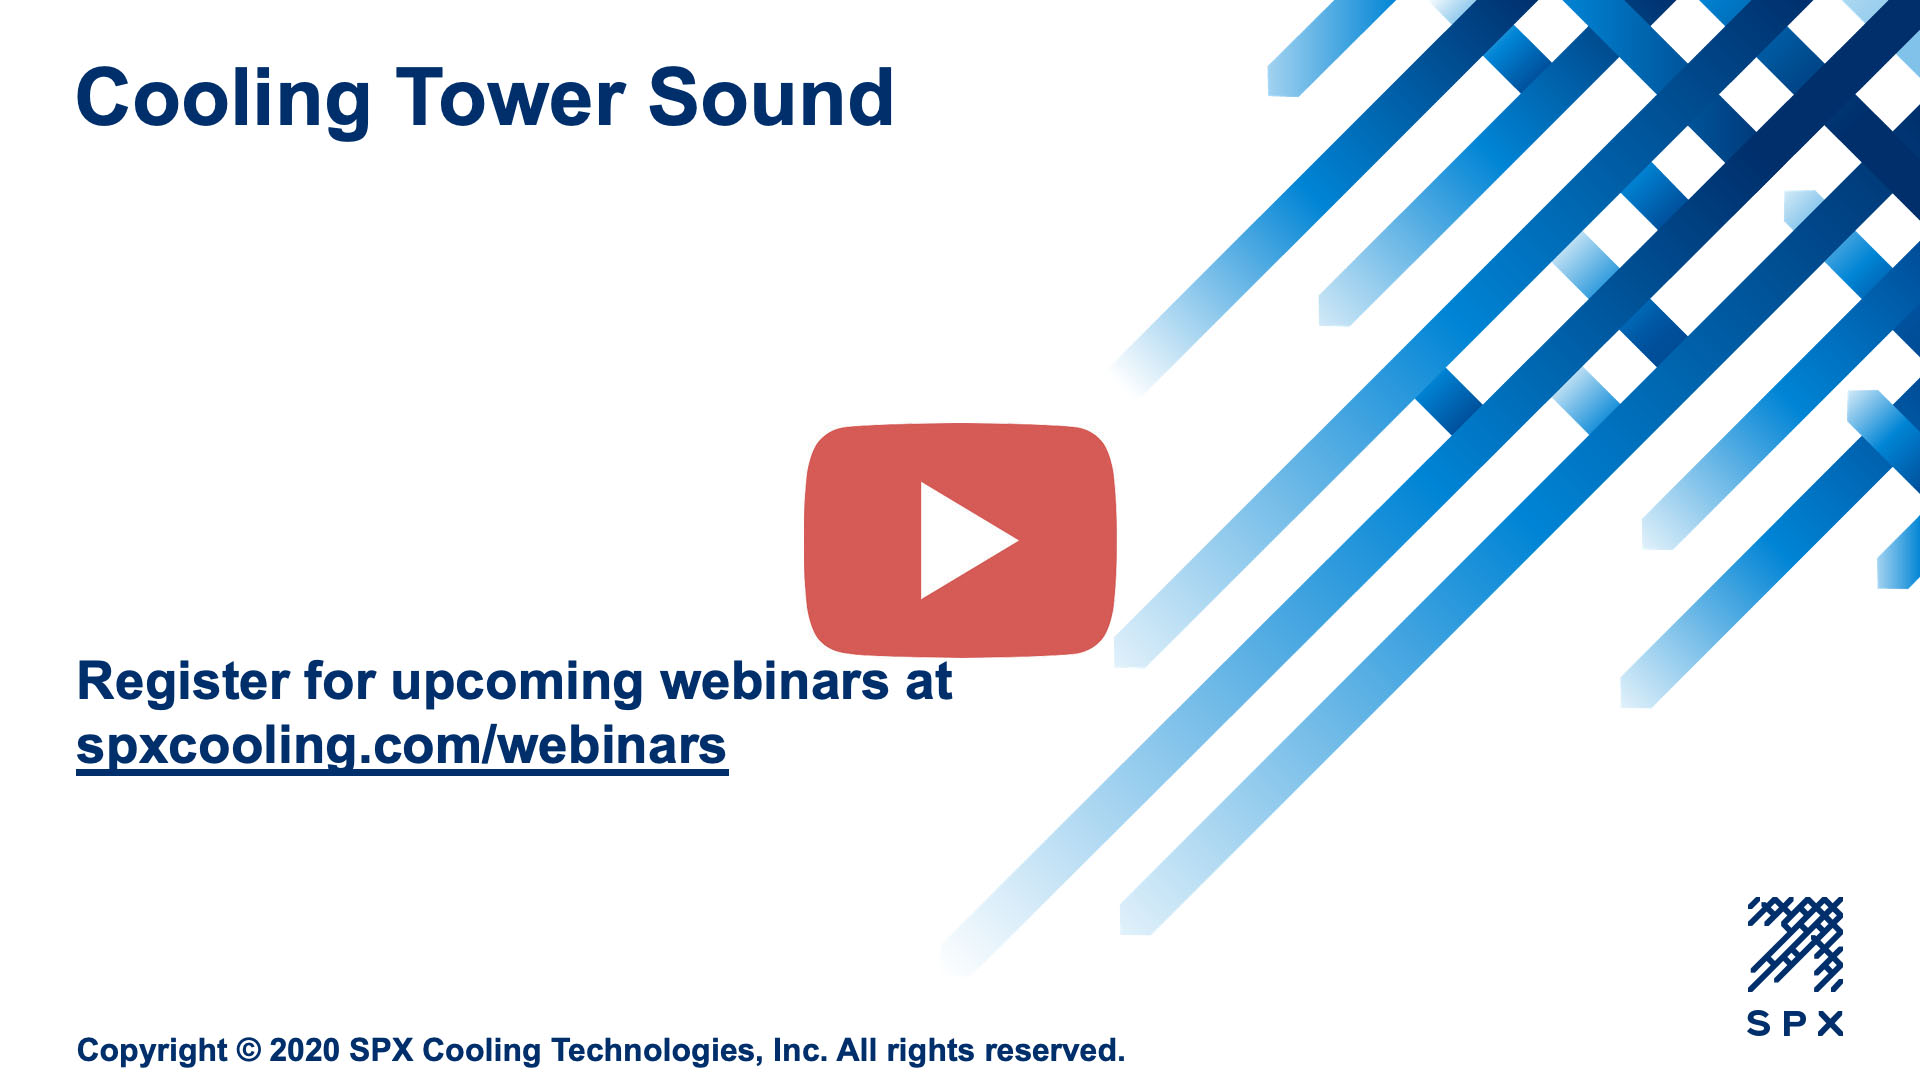 Cooling Tower Sound